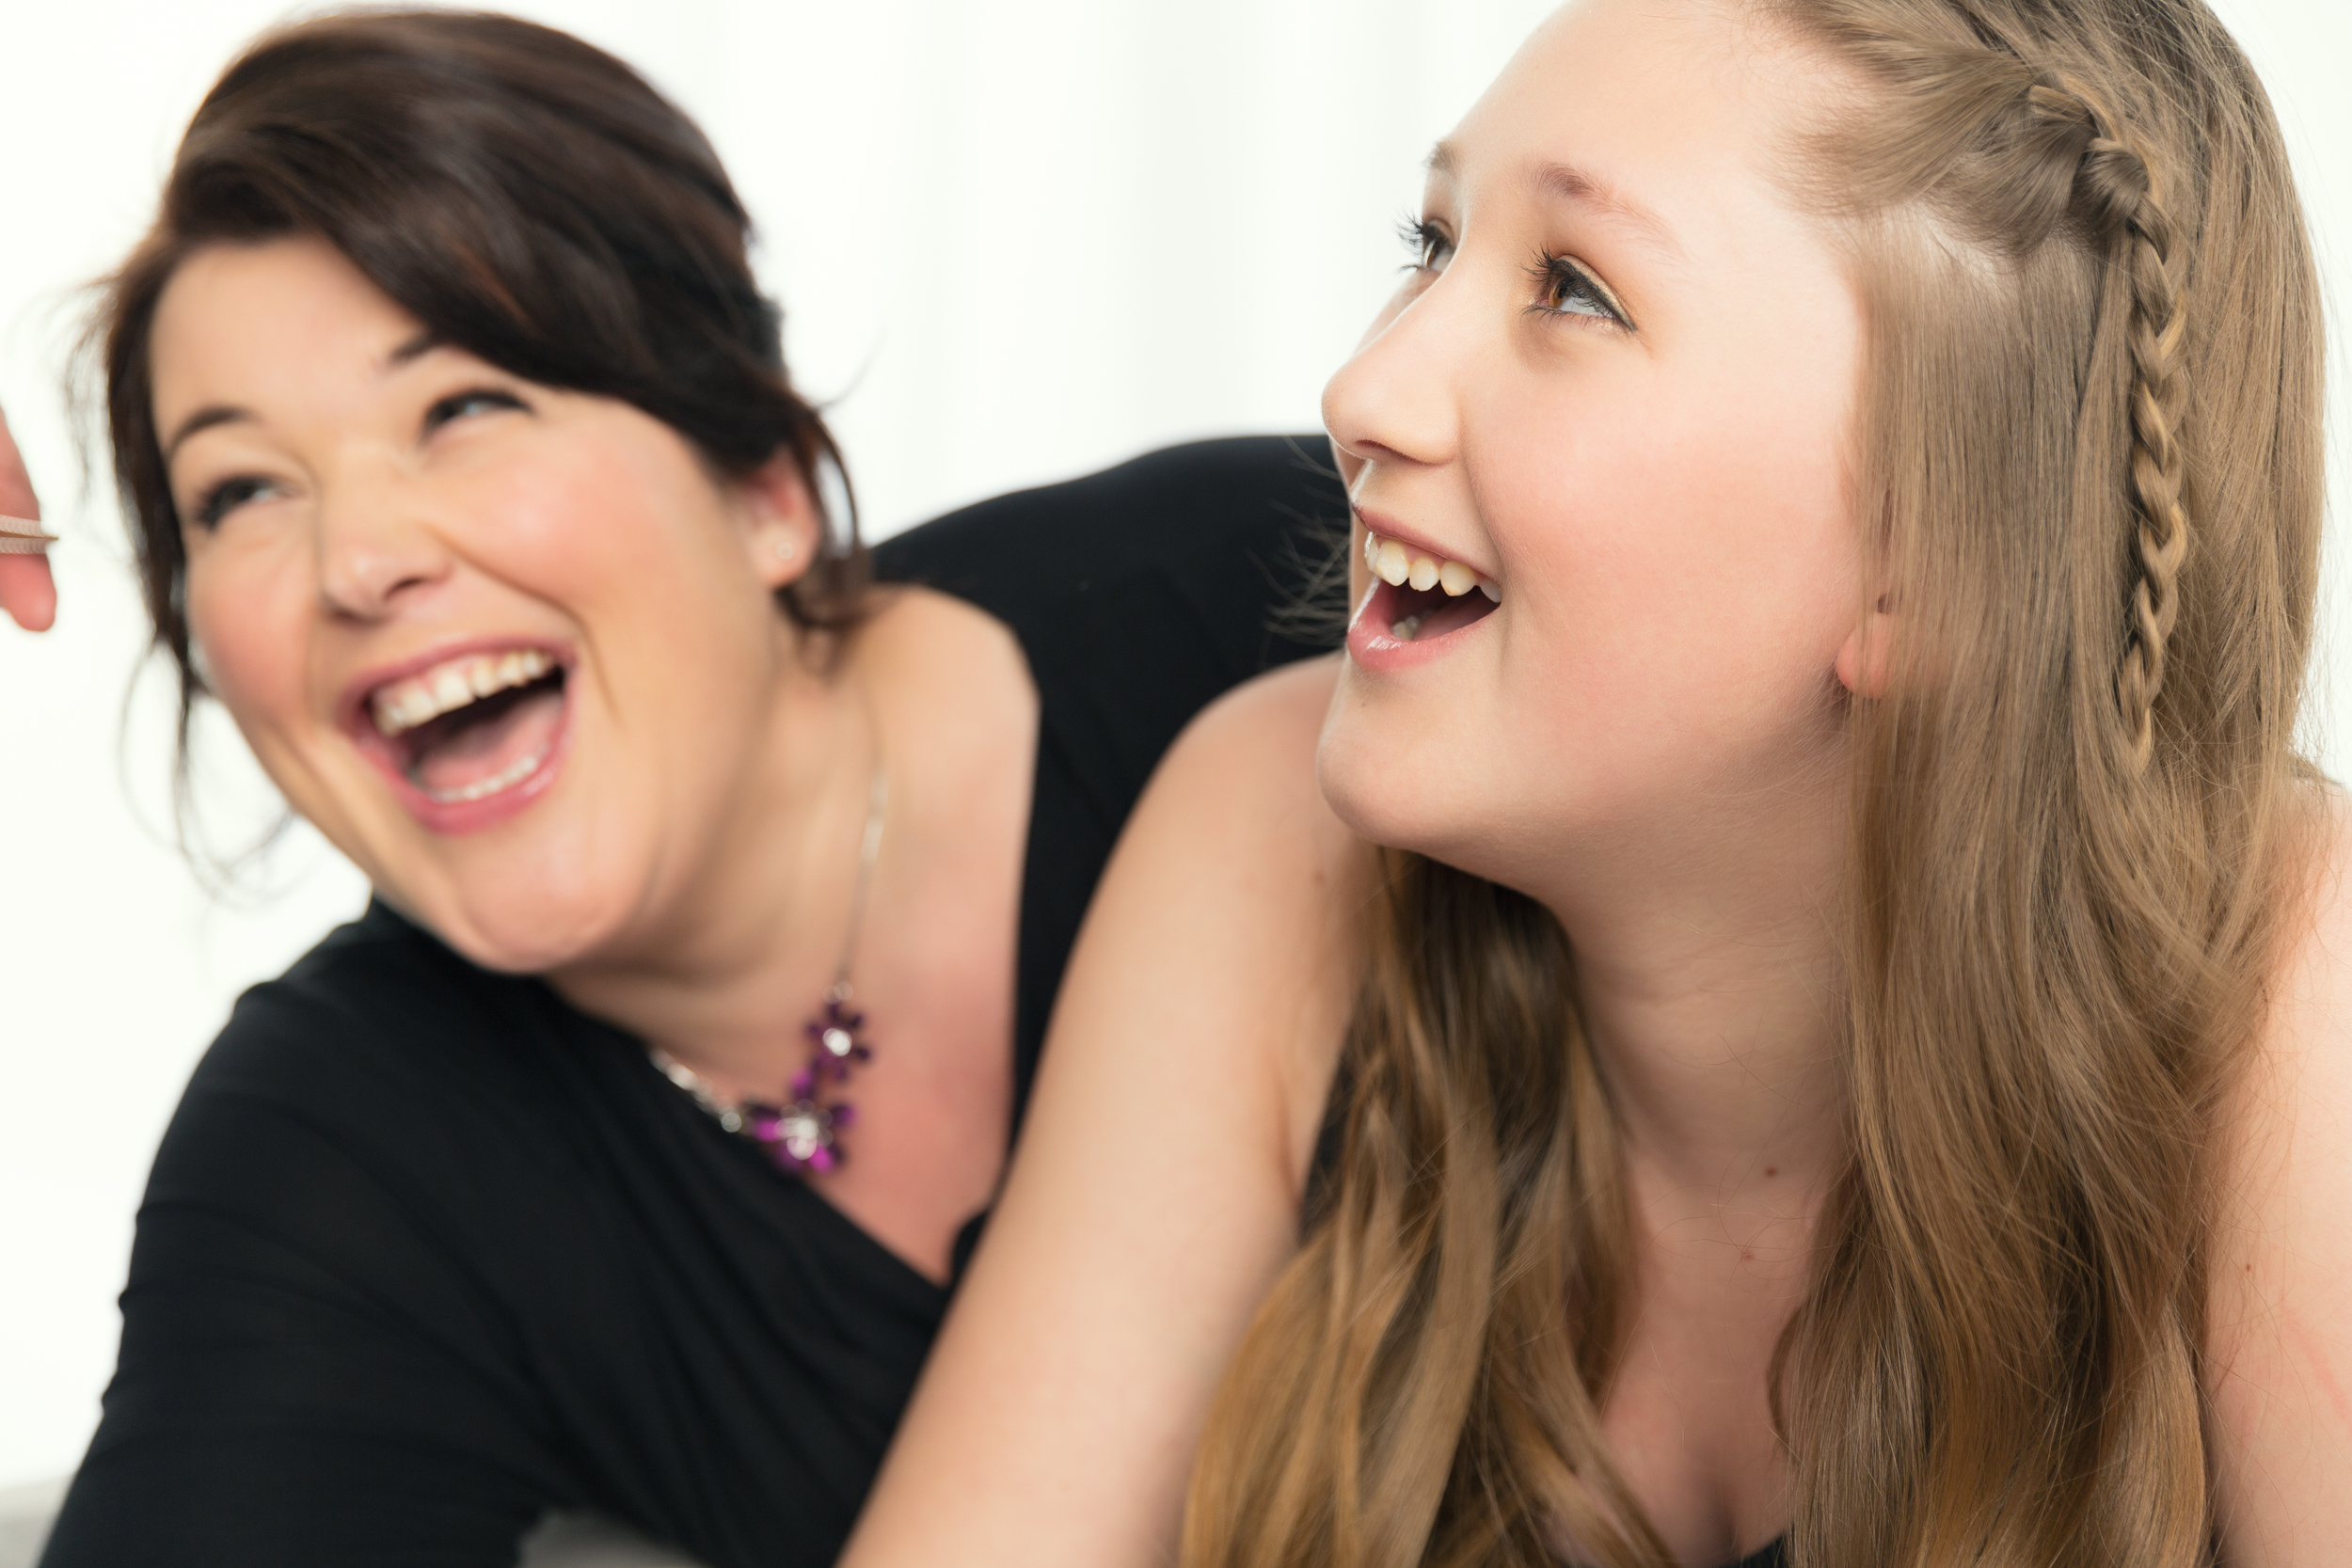 So much fun!  Mother and Daughter photoshoots  are a great way to celebrate your relationship. www.youdeservethis.com